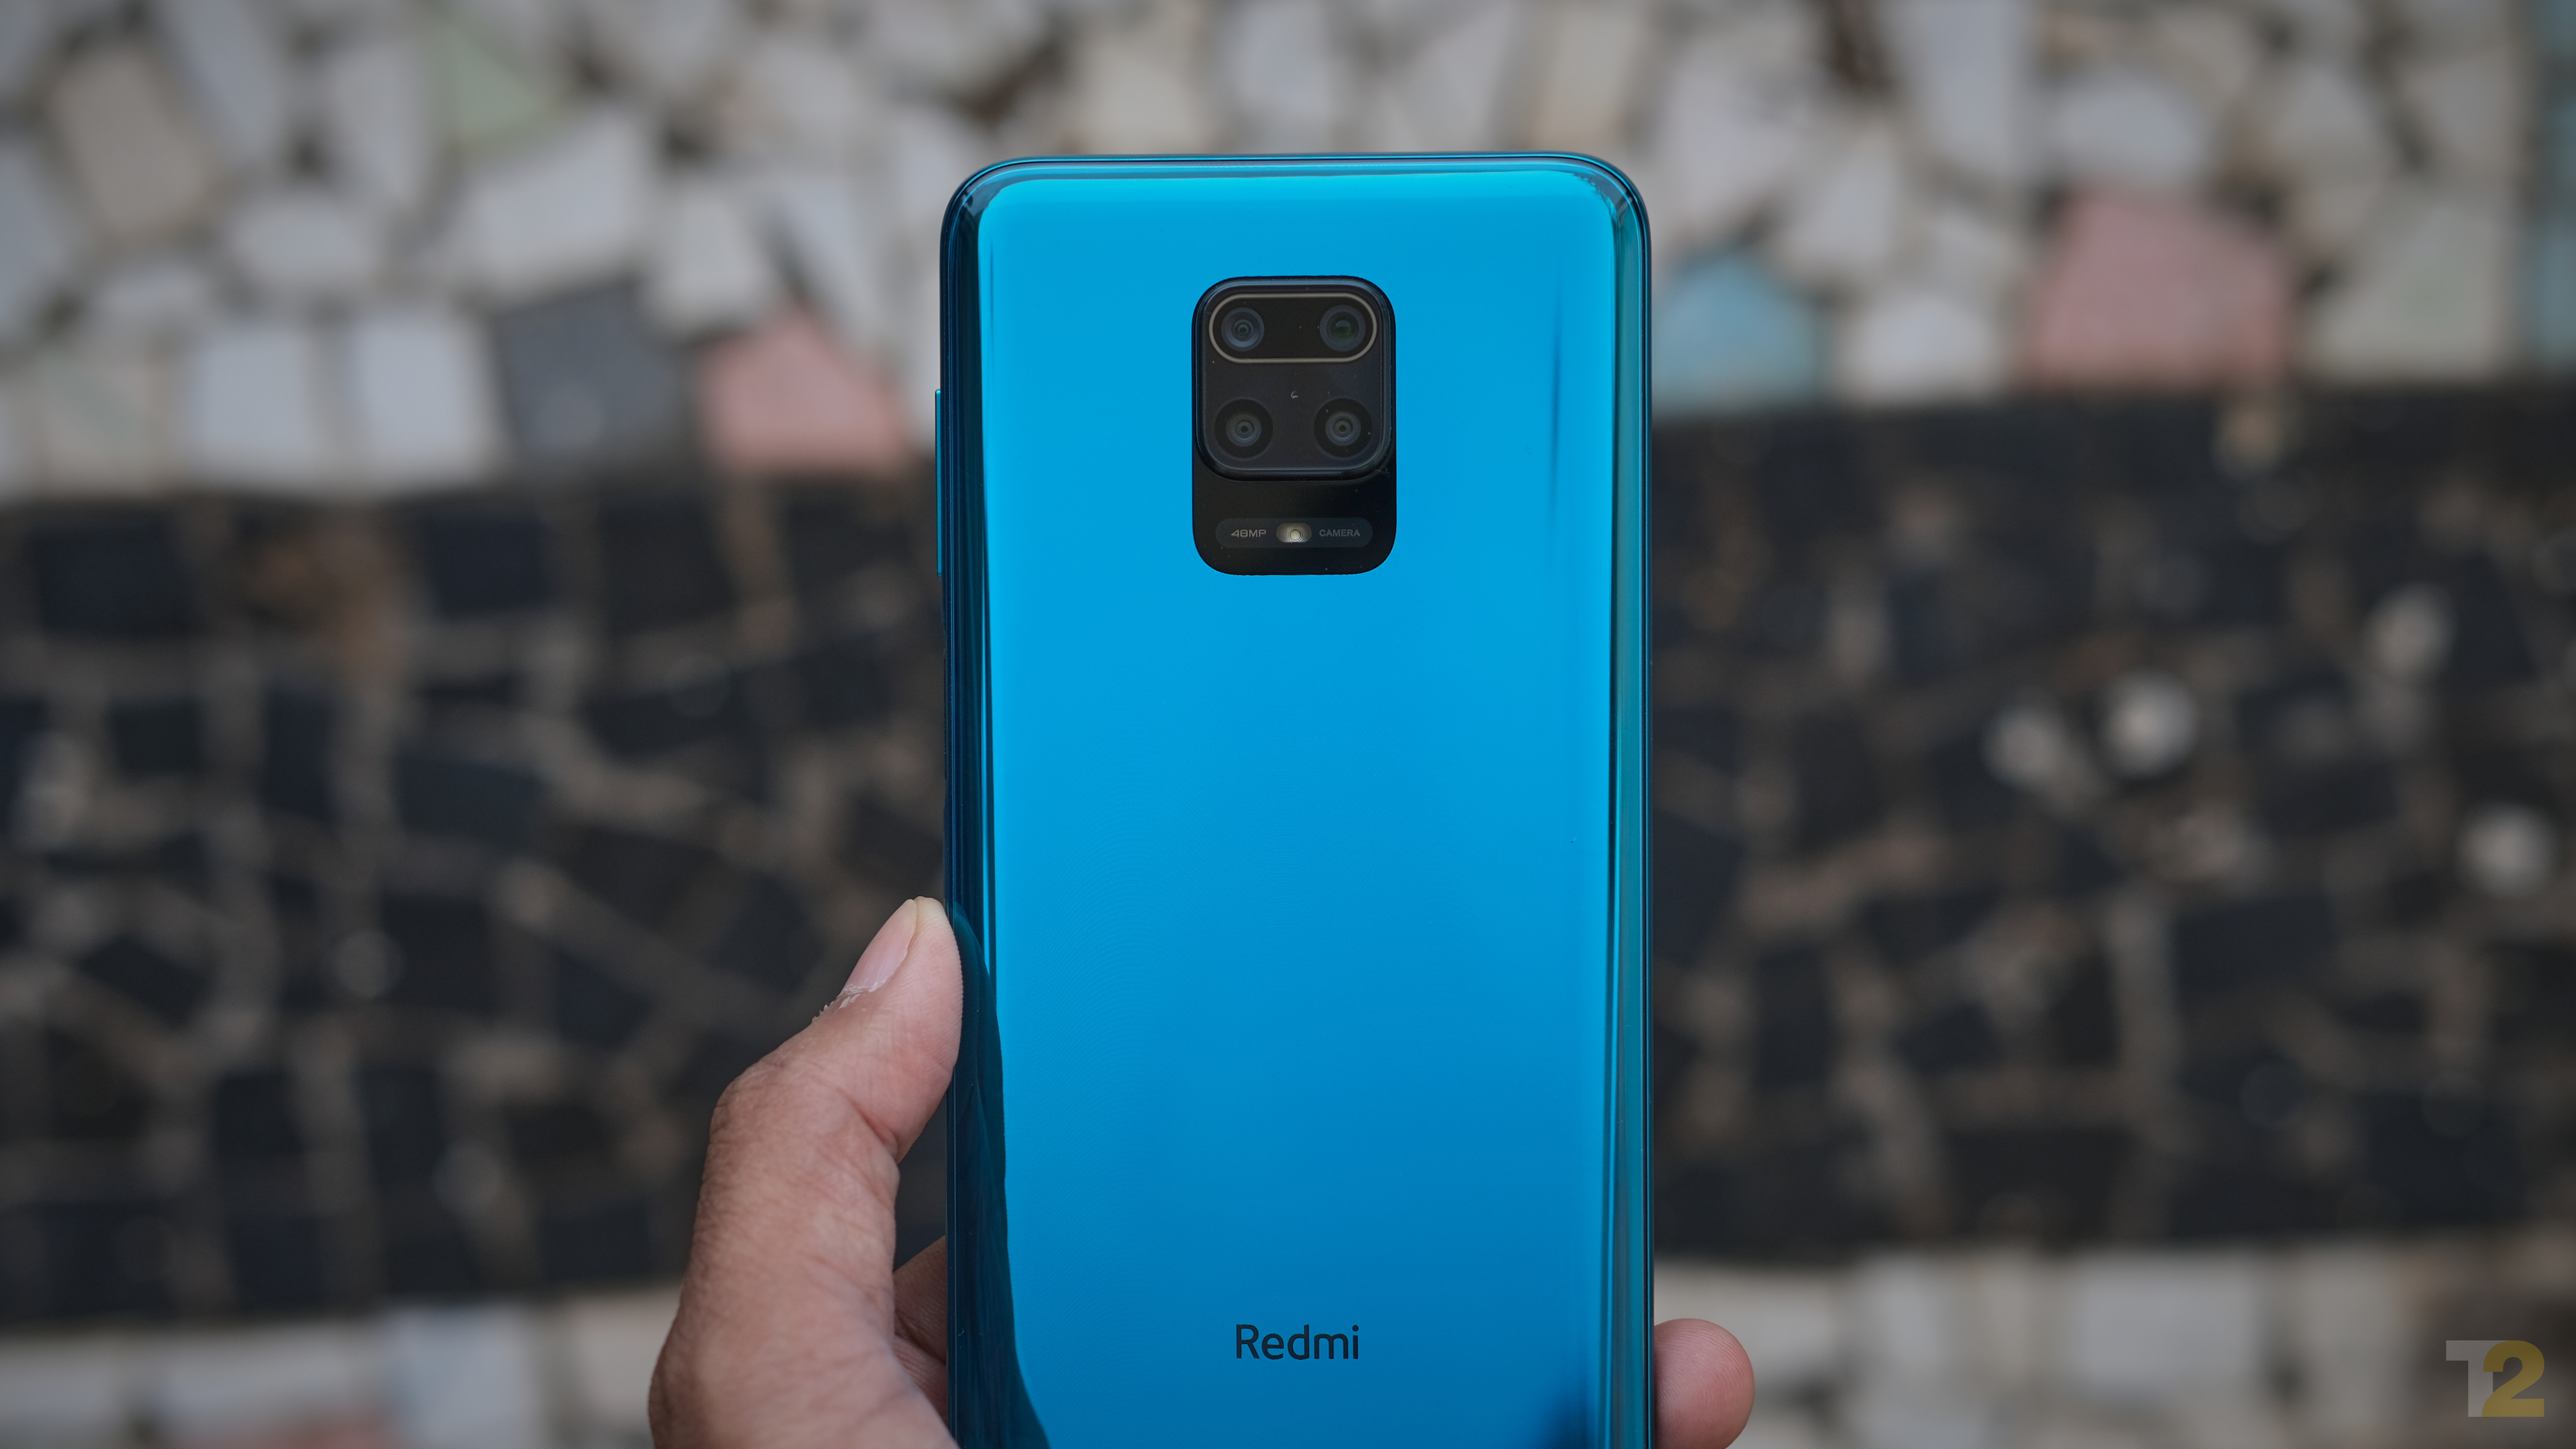 The quad camera setup on the rear of the phones is good, but the Max's 64 MP primary camera is leagues ahead of the Pro's 48 MP unit. Image: Anirudh Regidi